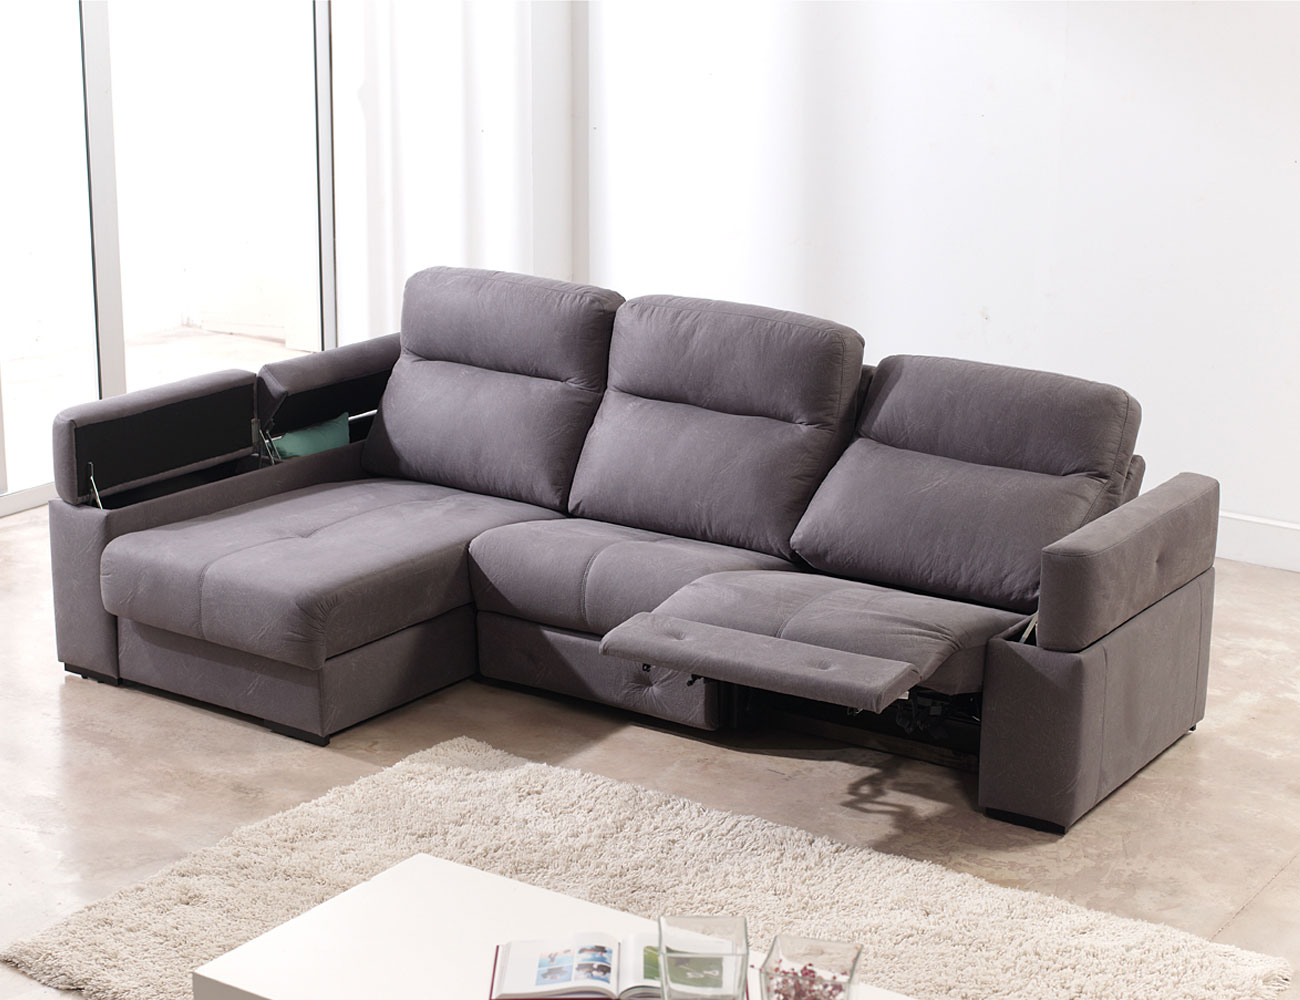 Sofa chaiselongue relax motor electrico 3 arcon 16